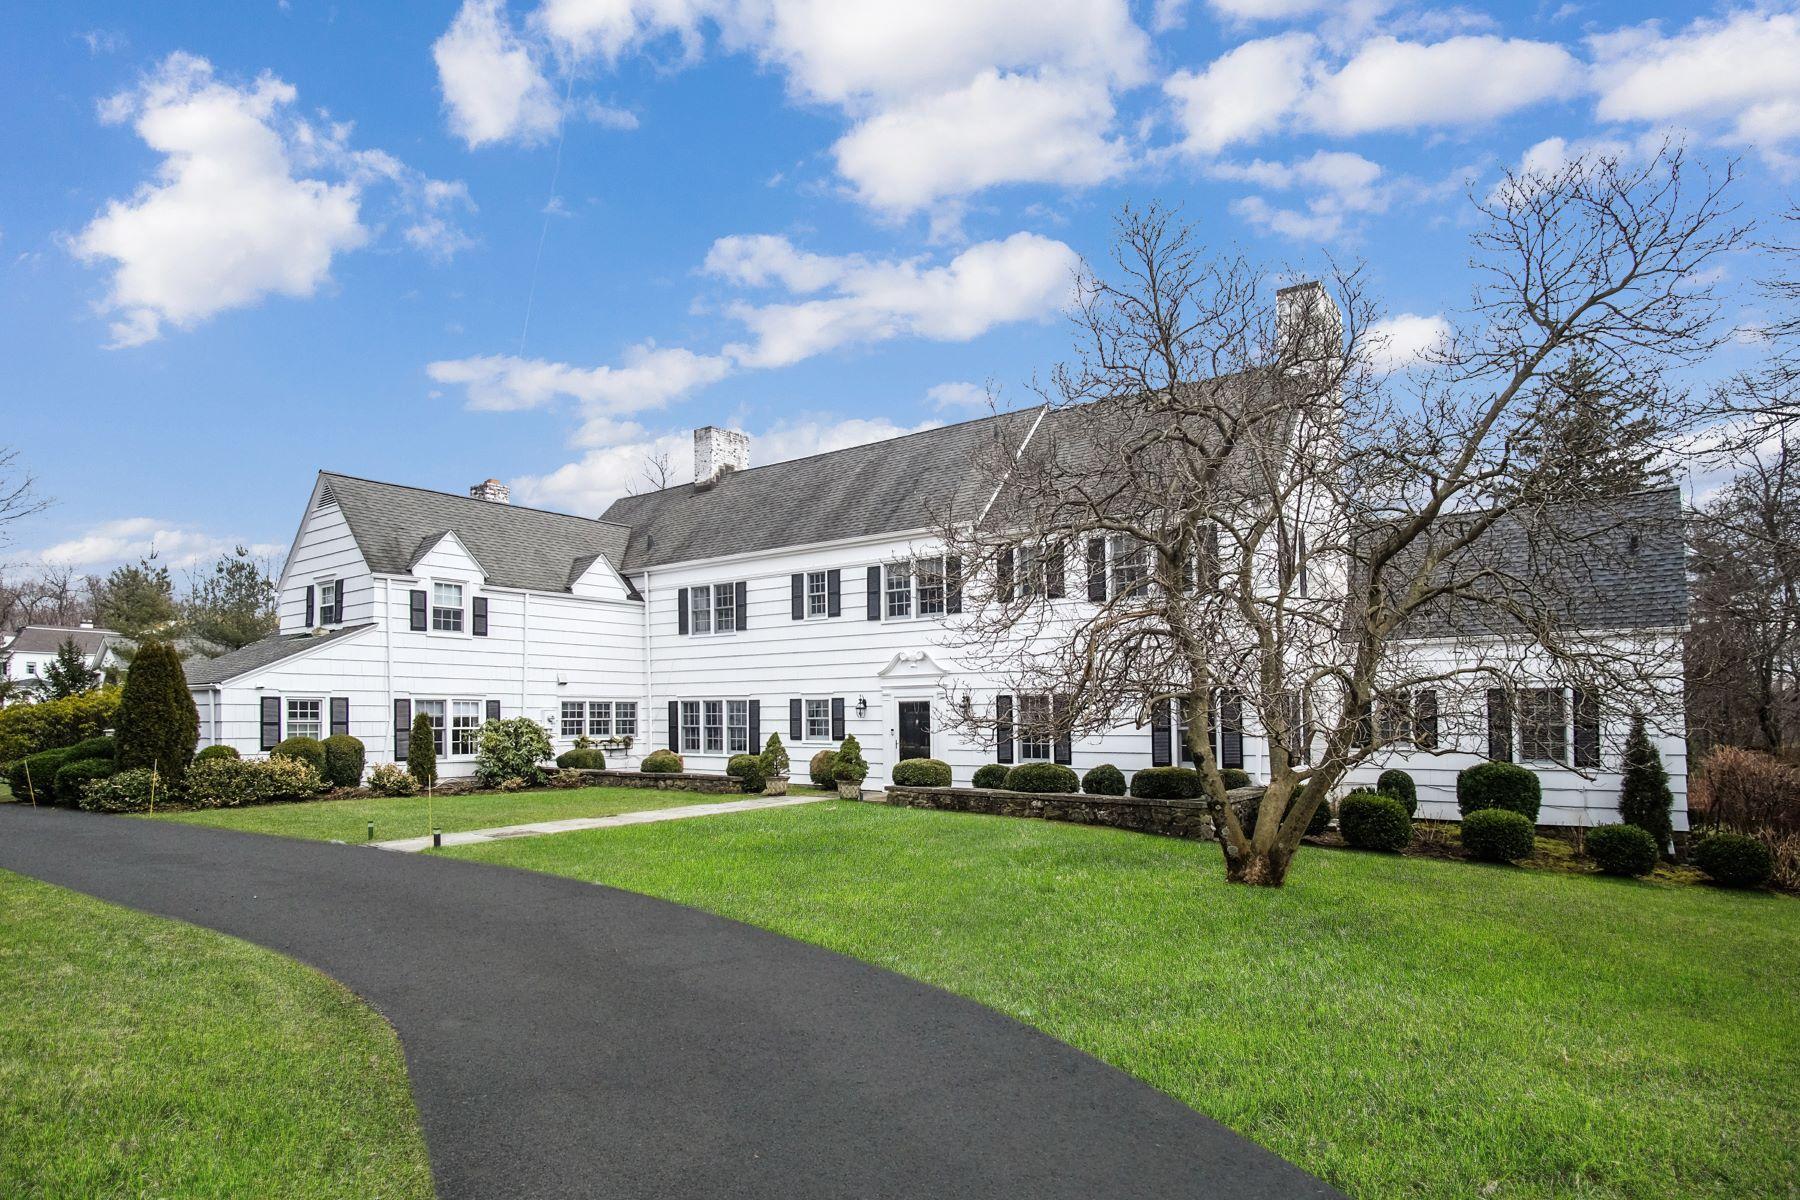 Single Family Homes for Active at 28 Muchmore Road Harrison, New York 10528 United States